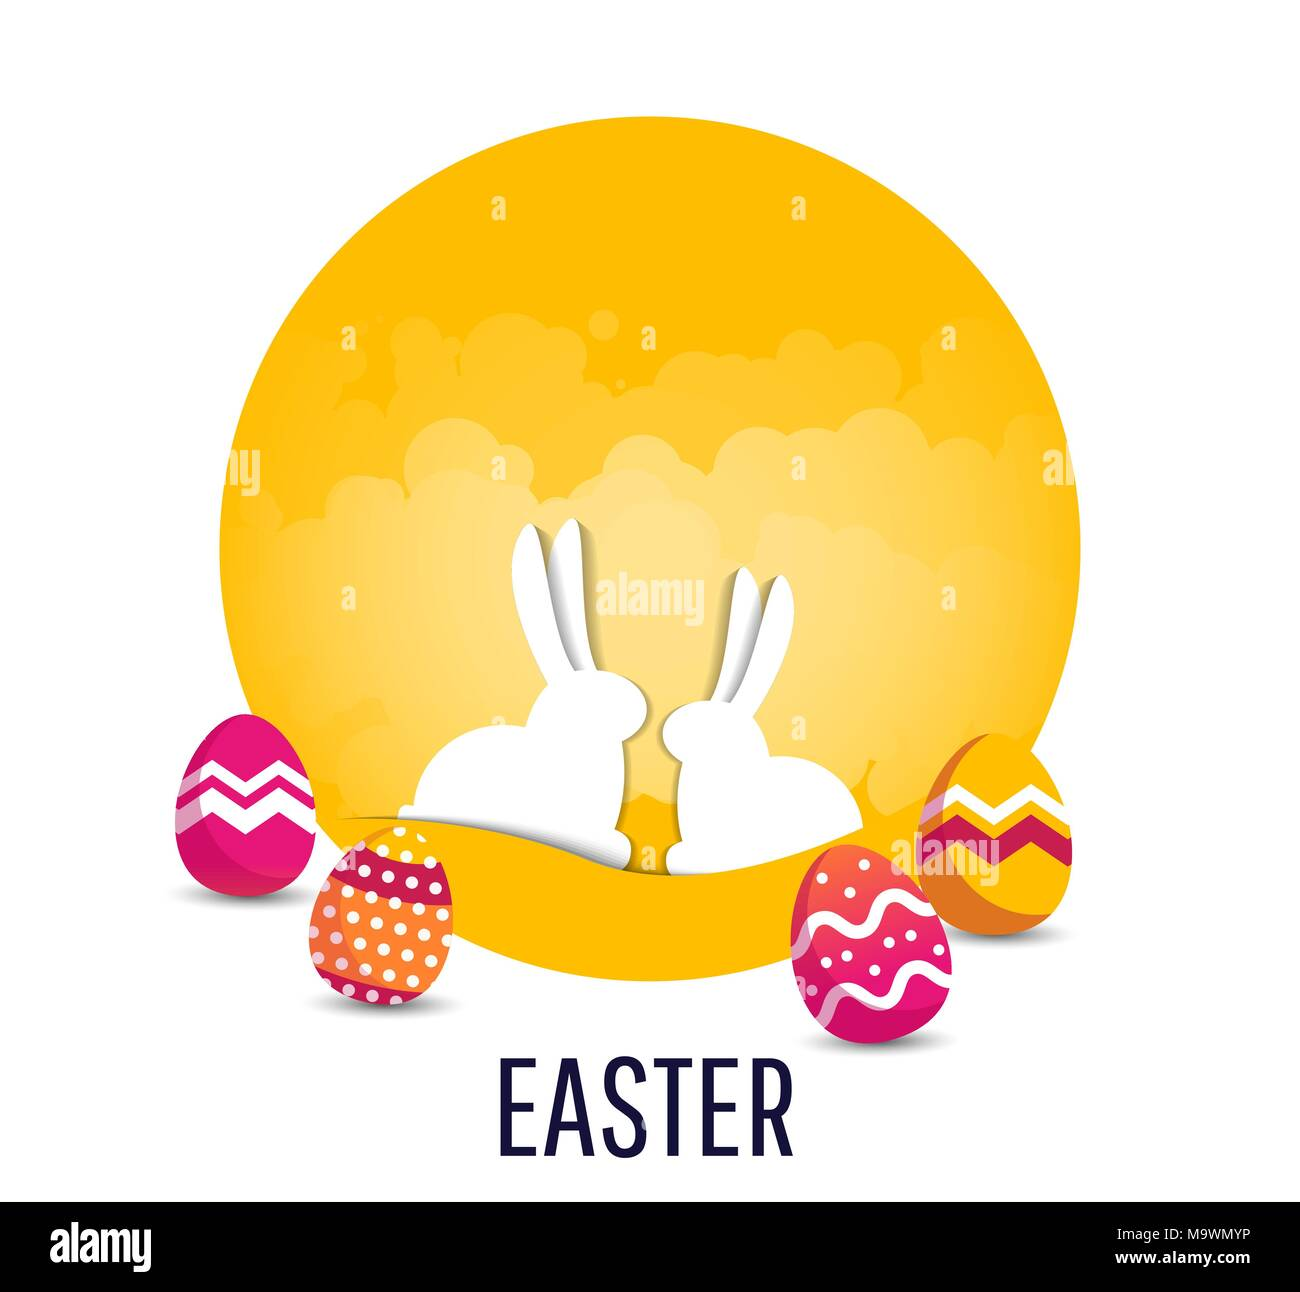 easter banner background template with modern colorful eggs and